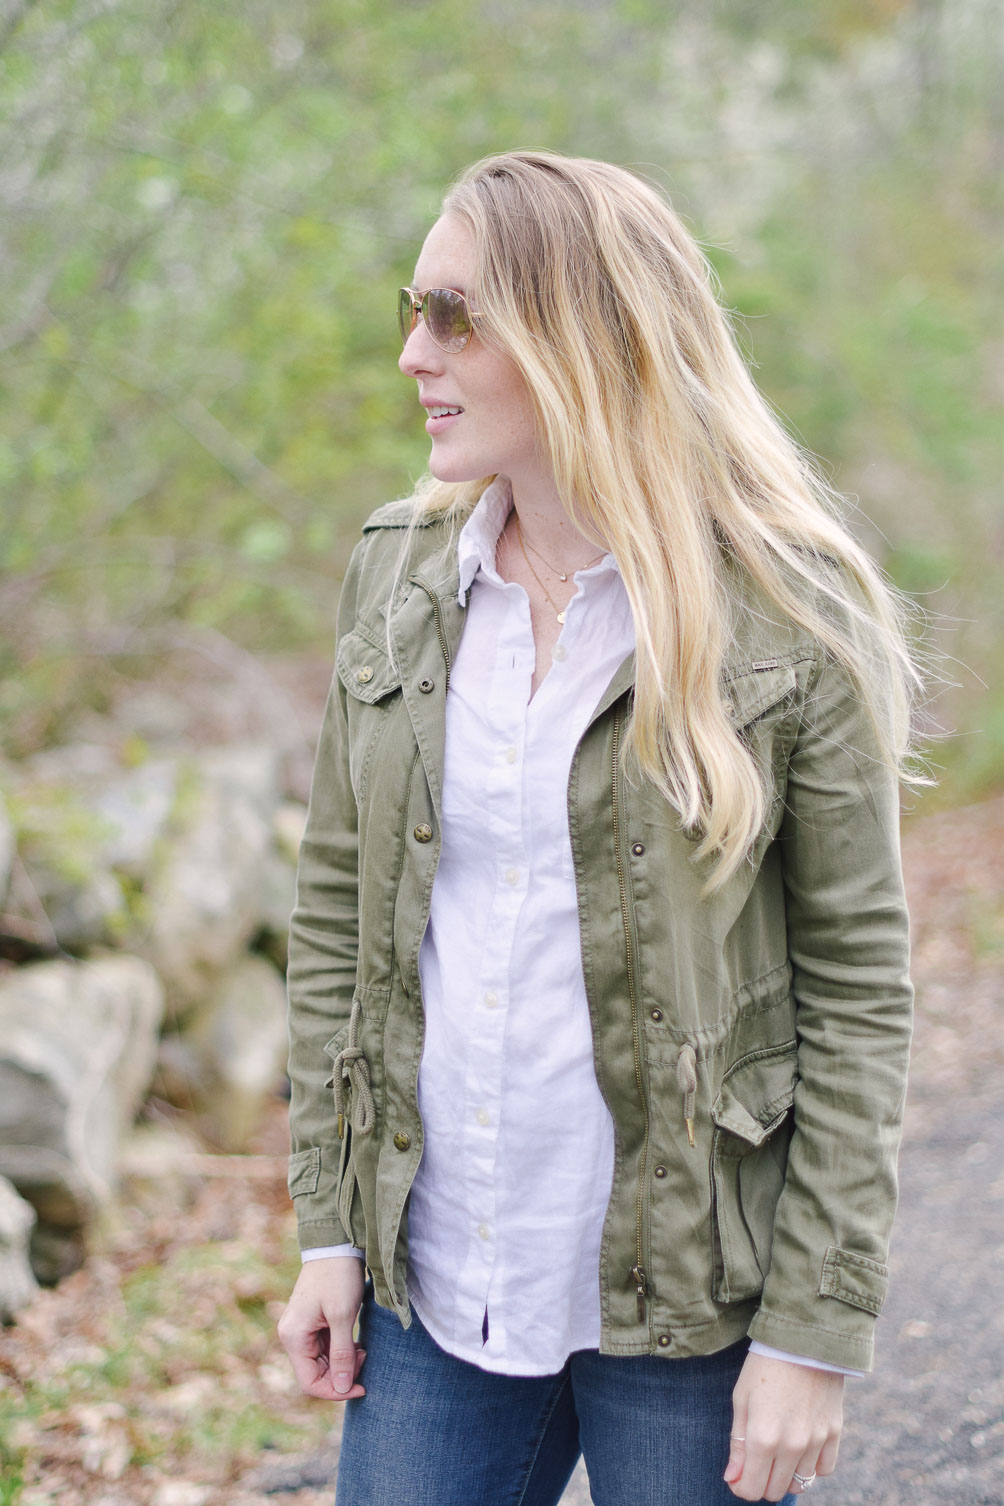 styling classic aviators with an army green spring jacket